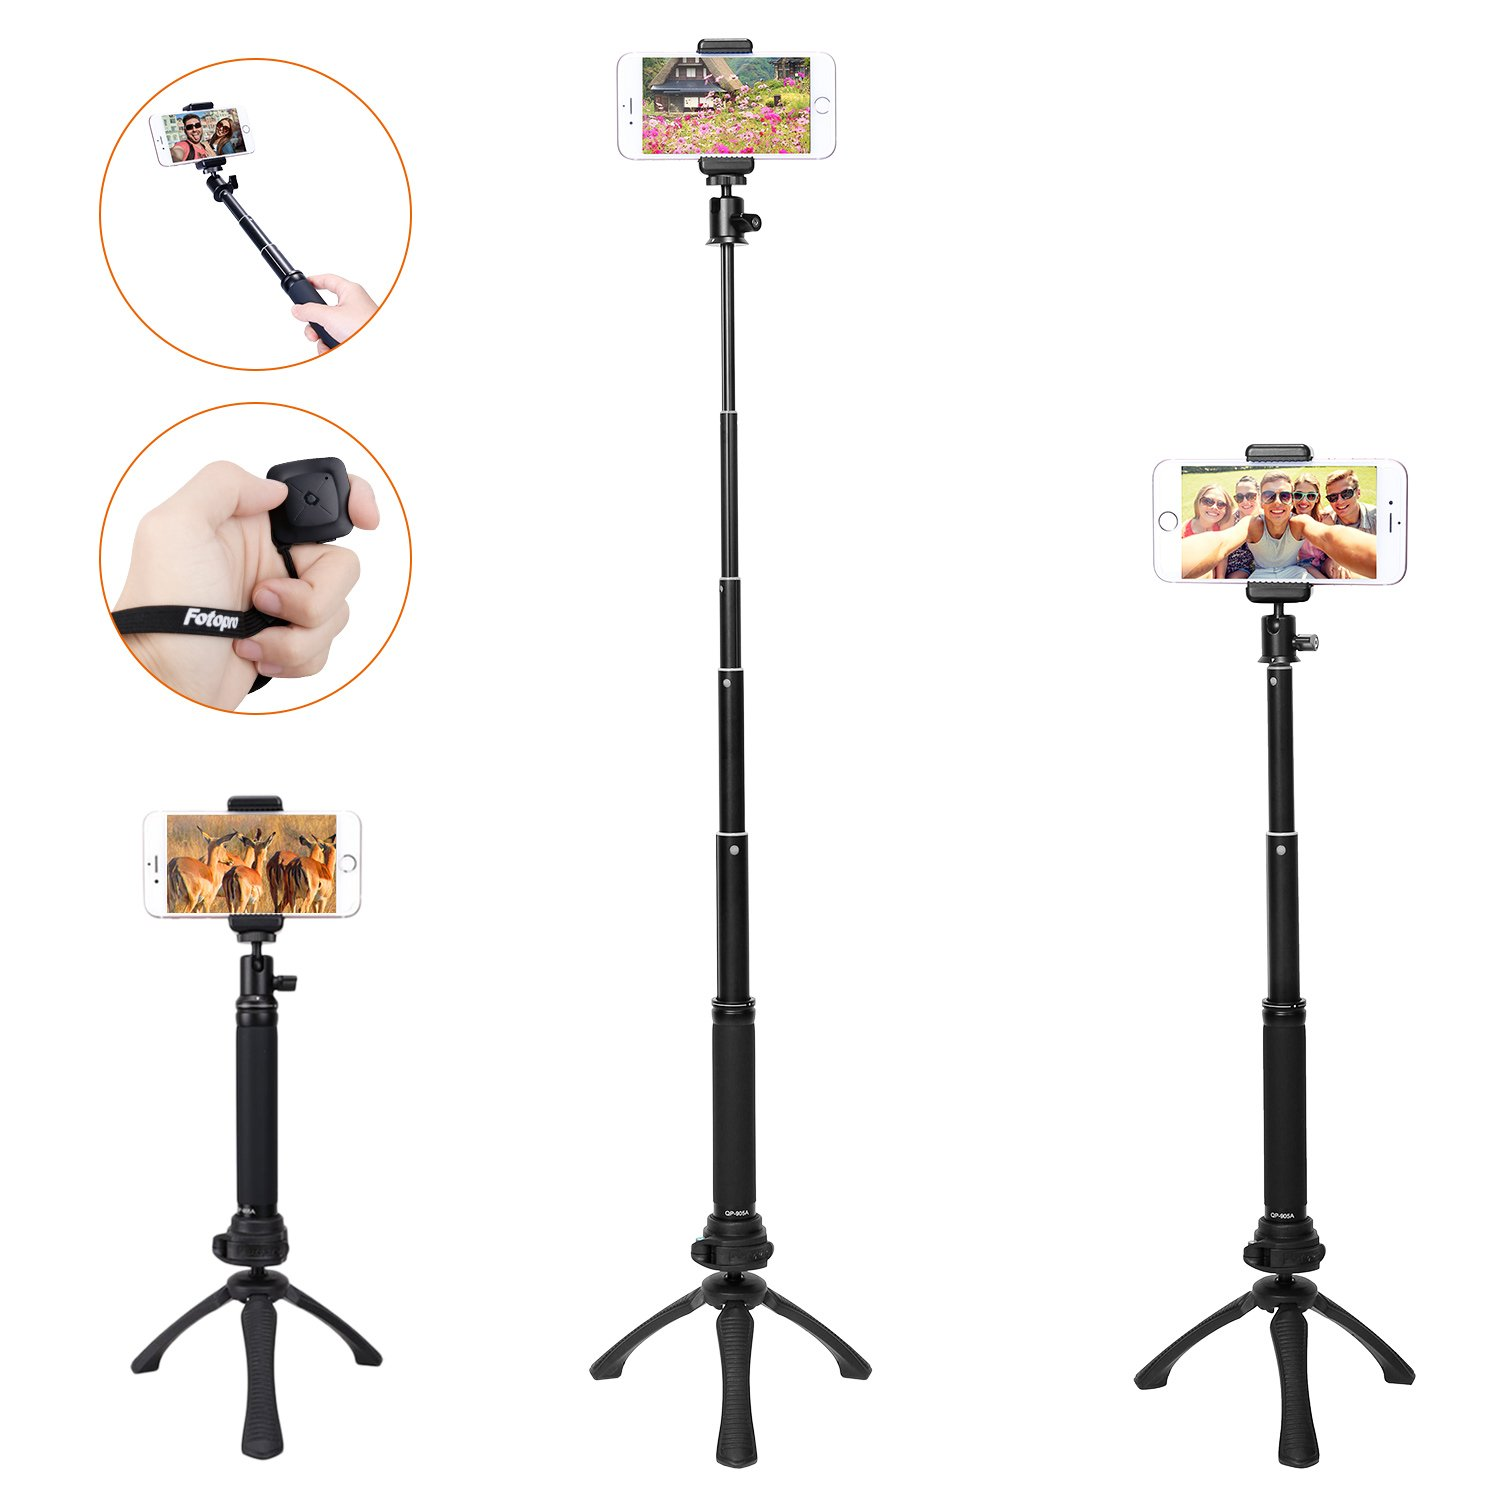 Selfie Stick, iPhone Tripod, Fotopro Selfie Stick Tripod Sets for Camera, Gopro, iPhone 7 7plus 6s 6 and Other Smartphones with Mobile Phone Adapter and Bluetooth Remote Shutter